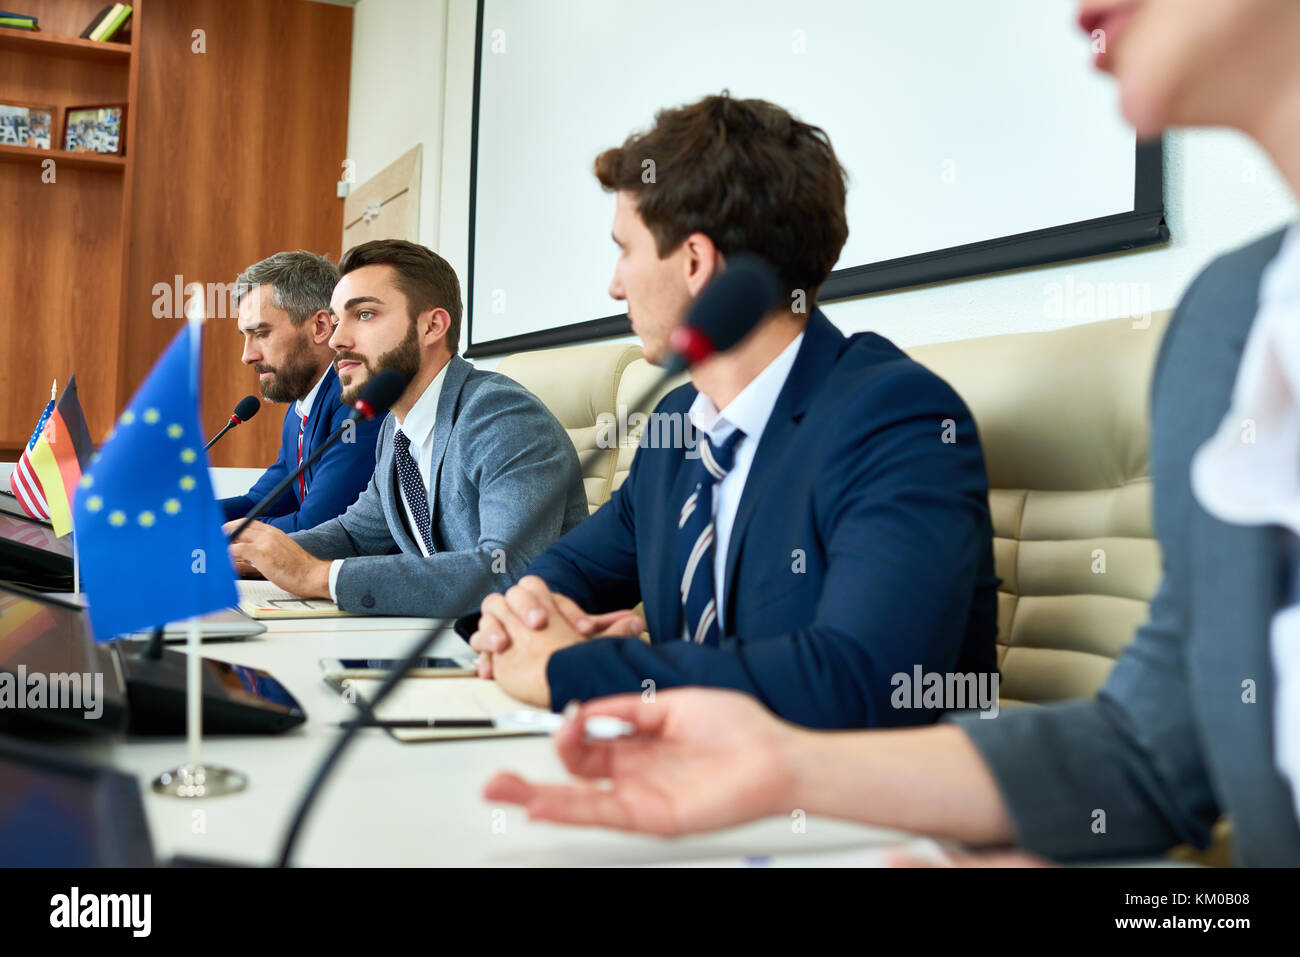 Discussing Topical Issues with Delegates - Stock Image